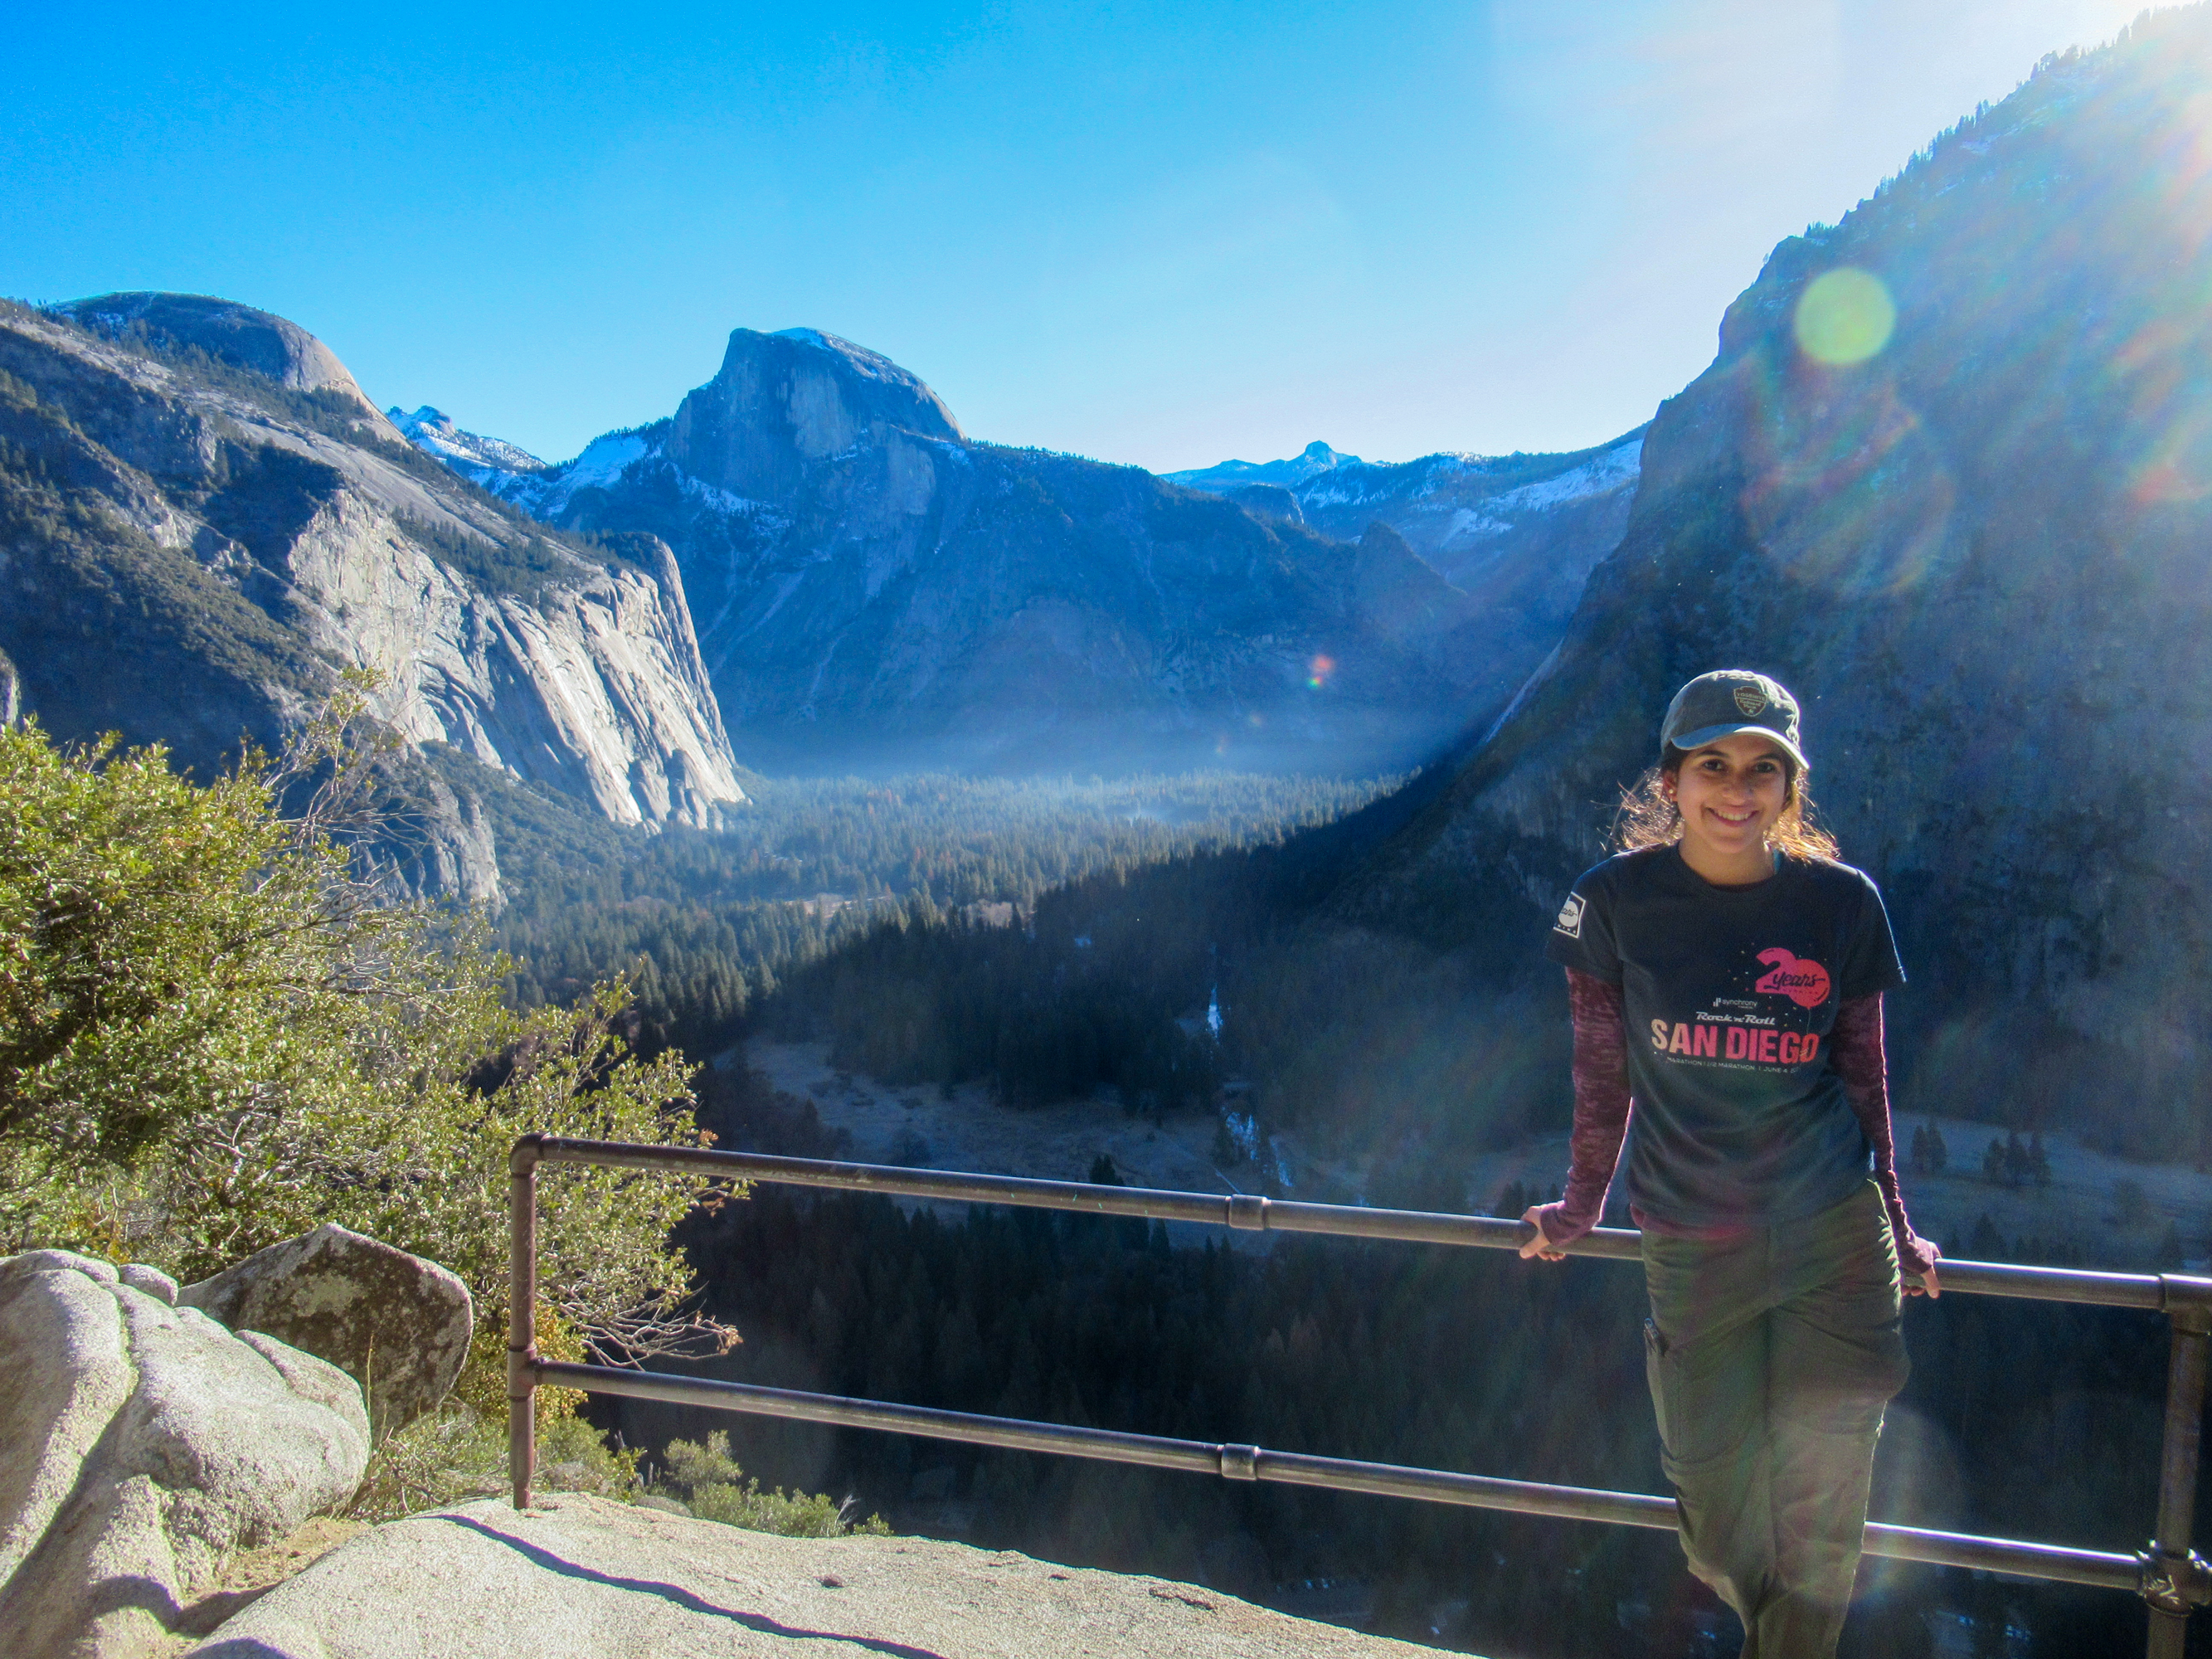 Madison Snively poses for a photo above Yosemite Valley.